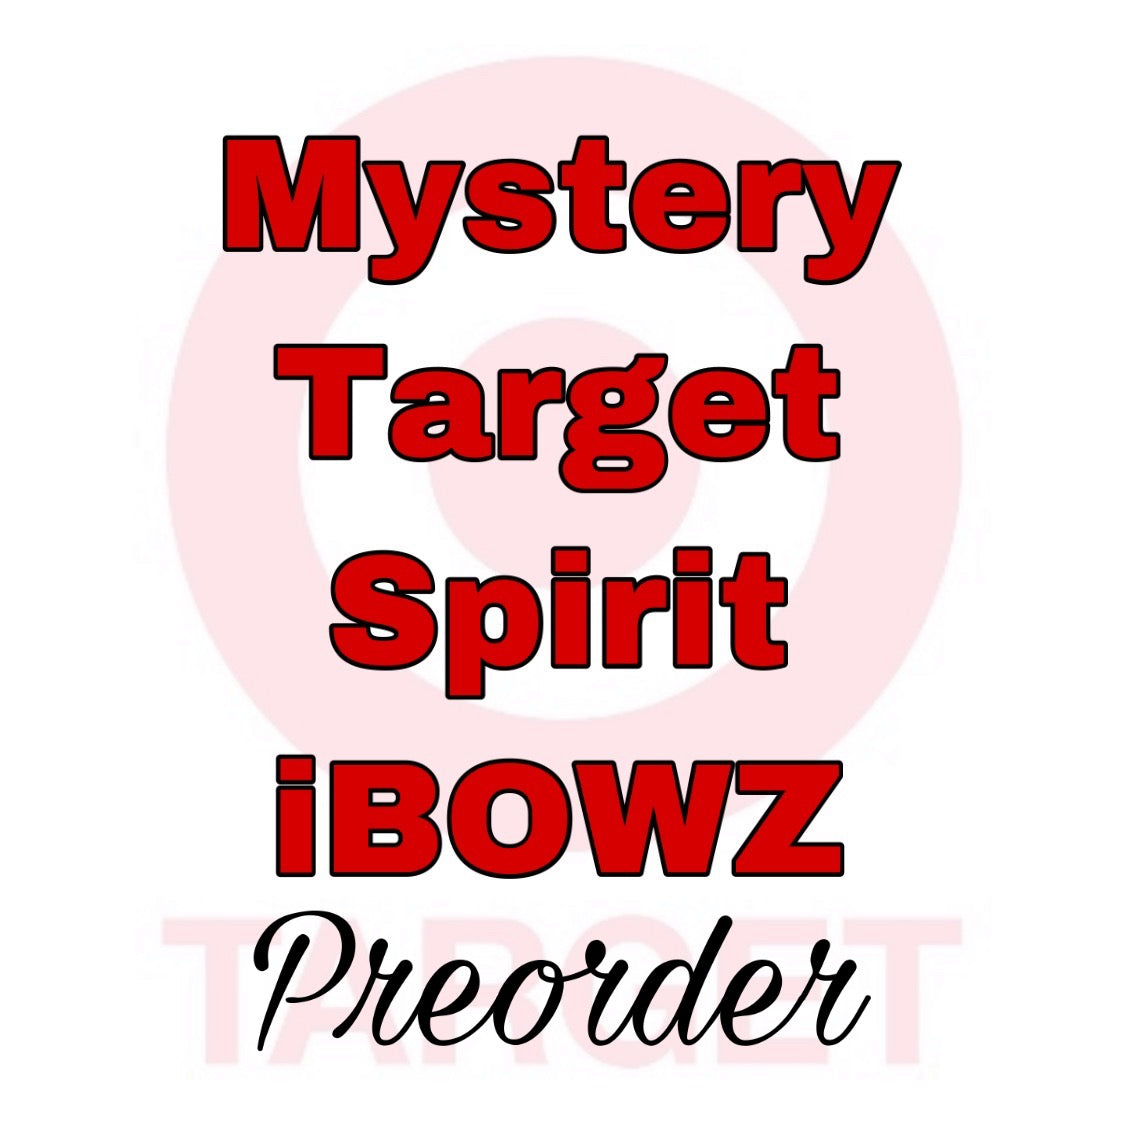 MYSTERY TARGET PREORDER HAIRBOW ~ Preorder hair bow ~ ibowz fun & funky hairbows